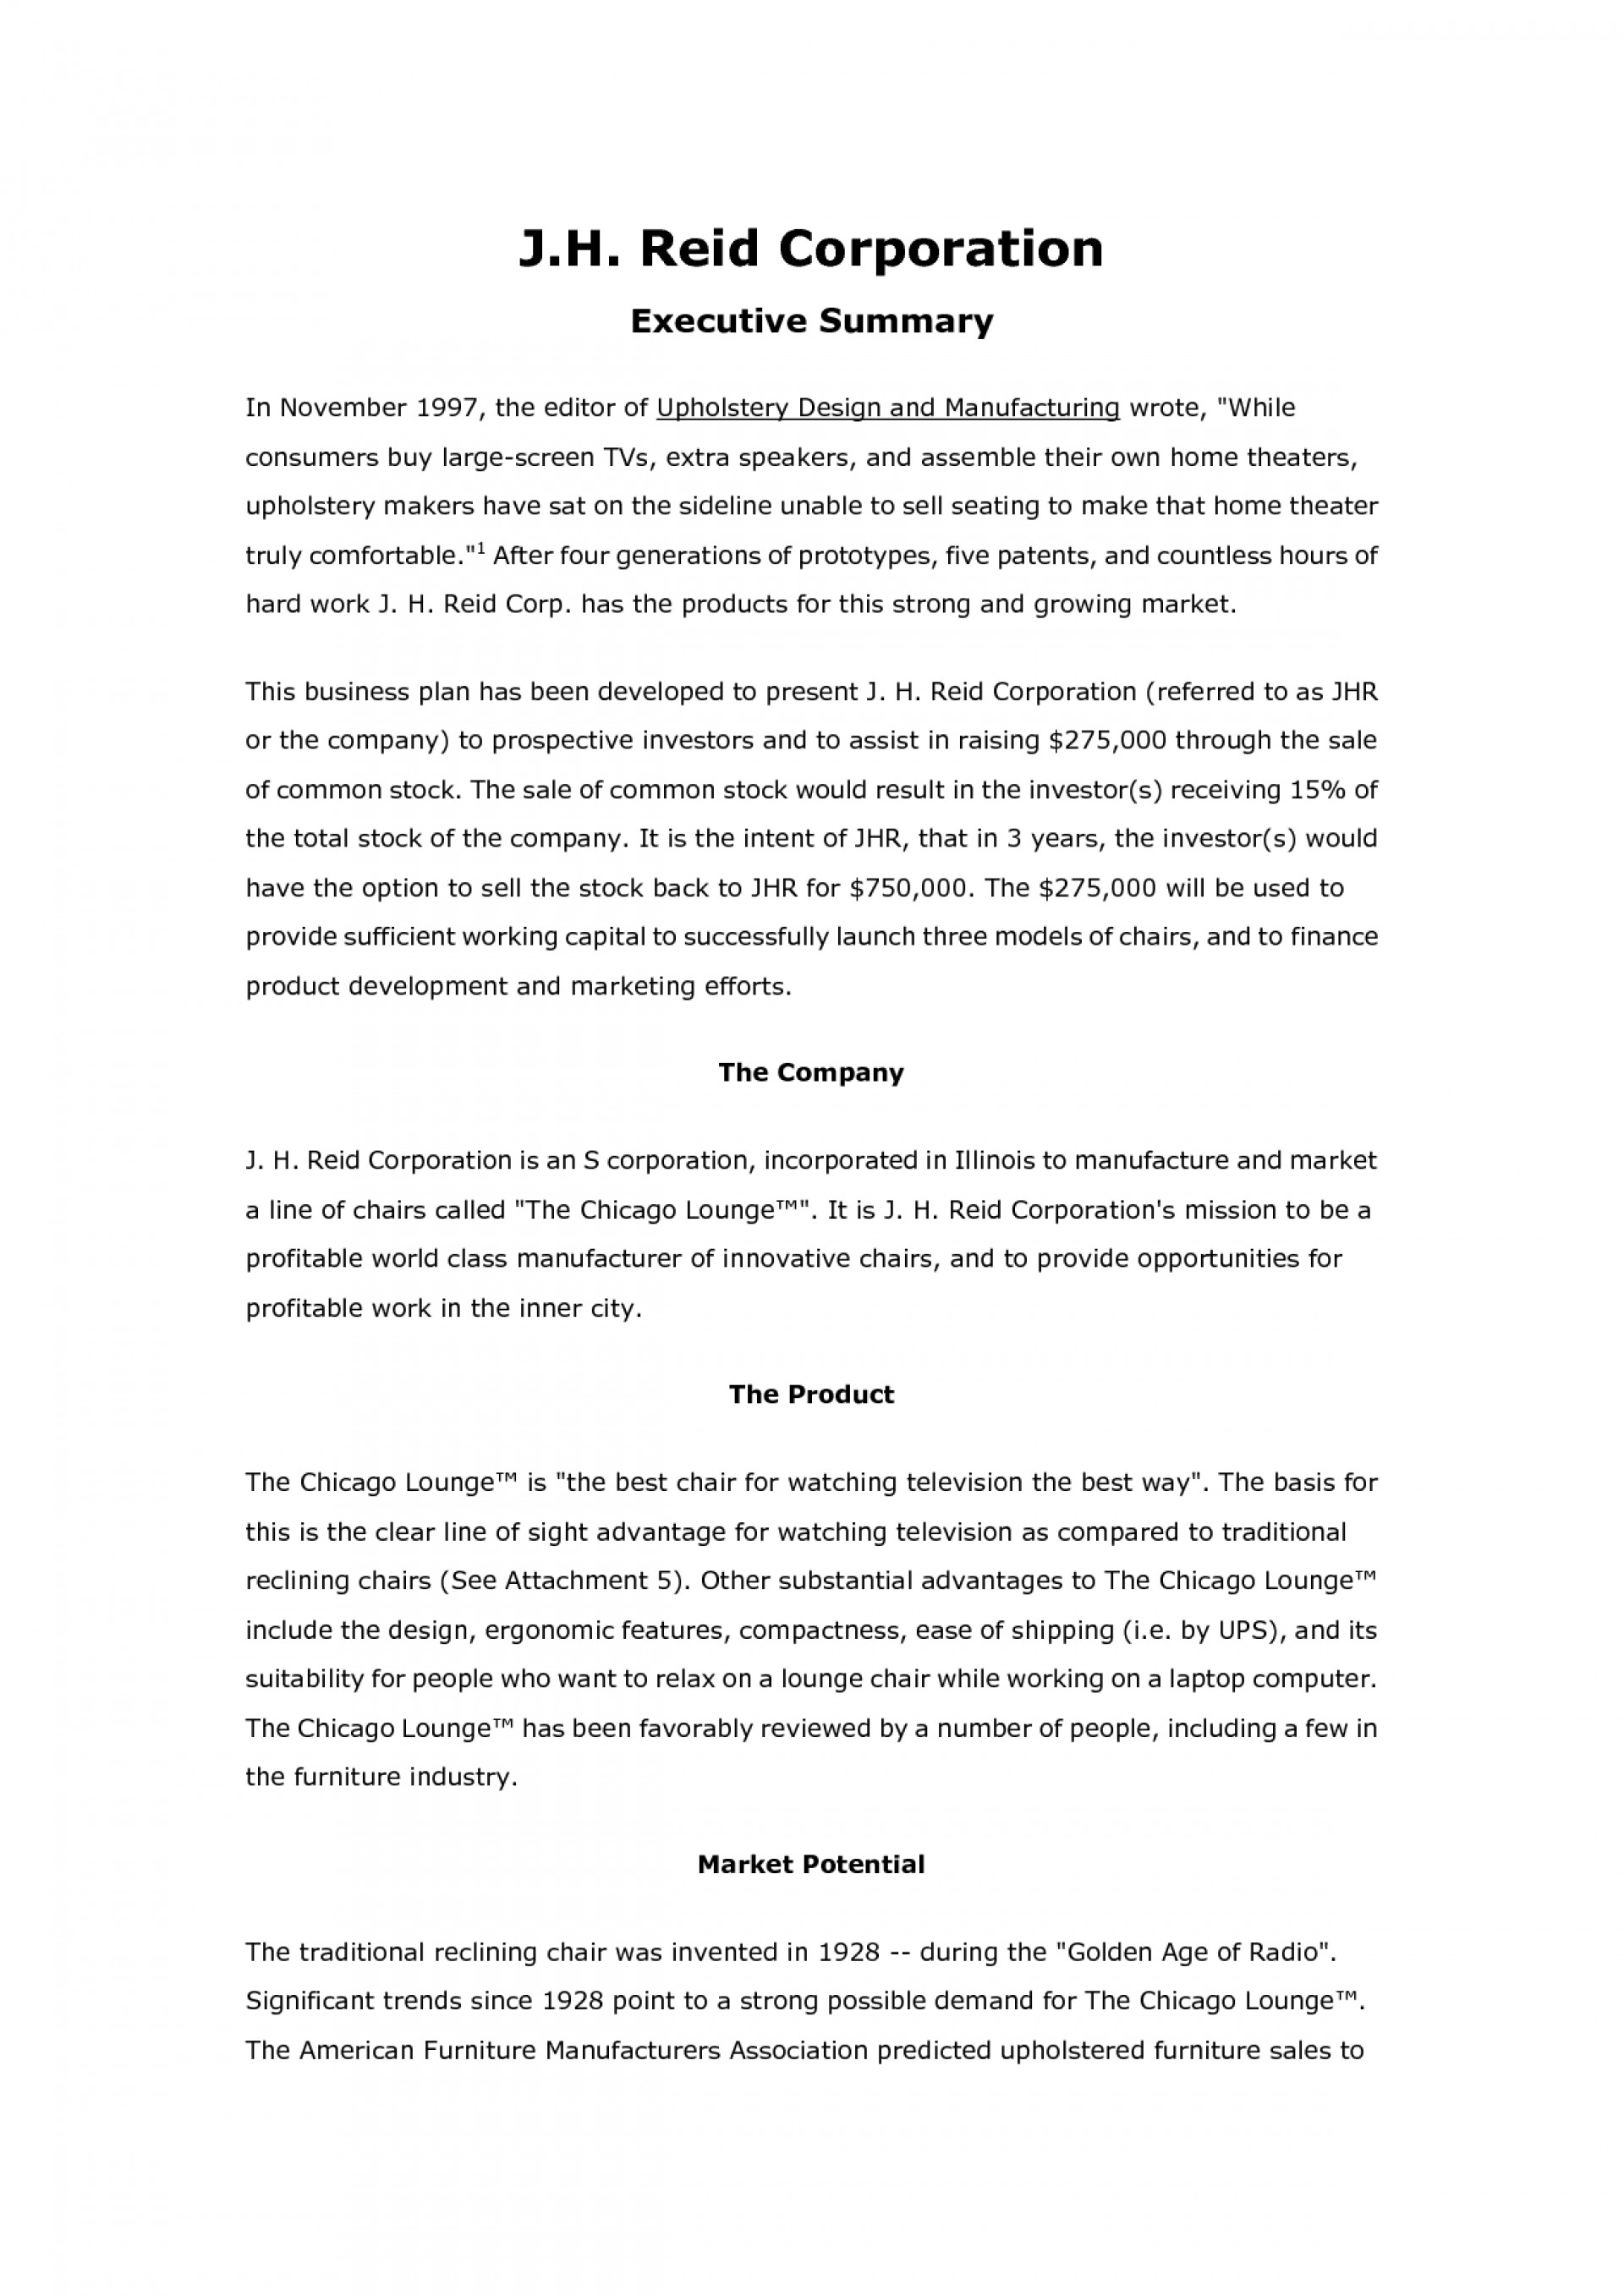 011 Ethics Essay Example Business Plan Formidable Code Of Sample Outline 1920